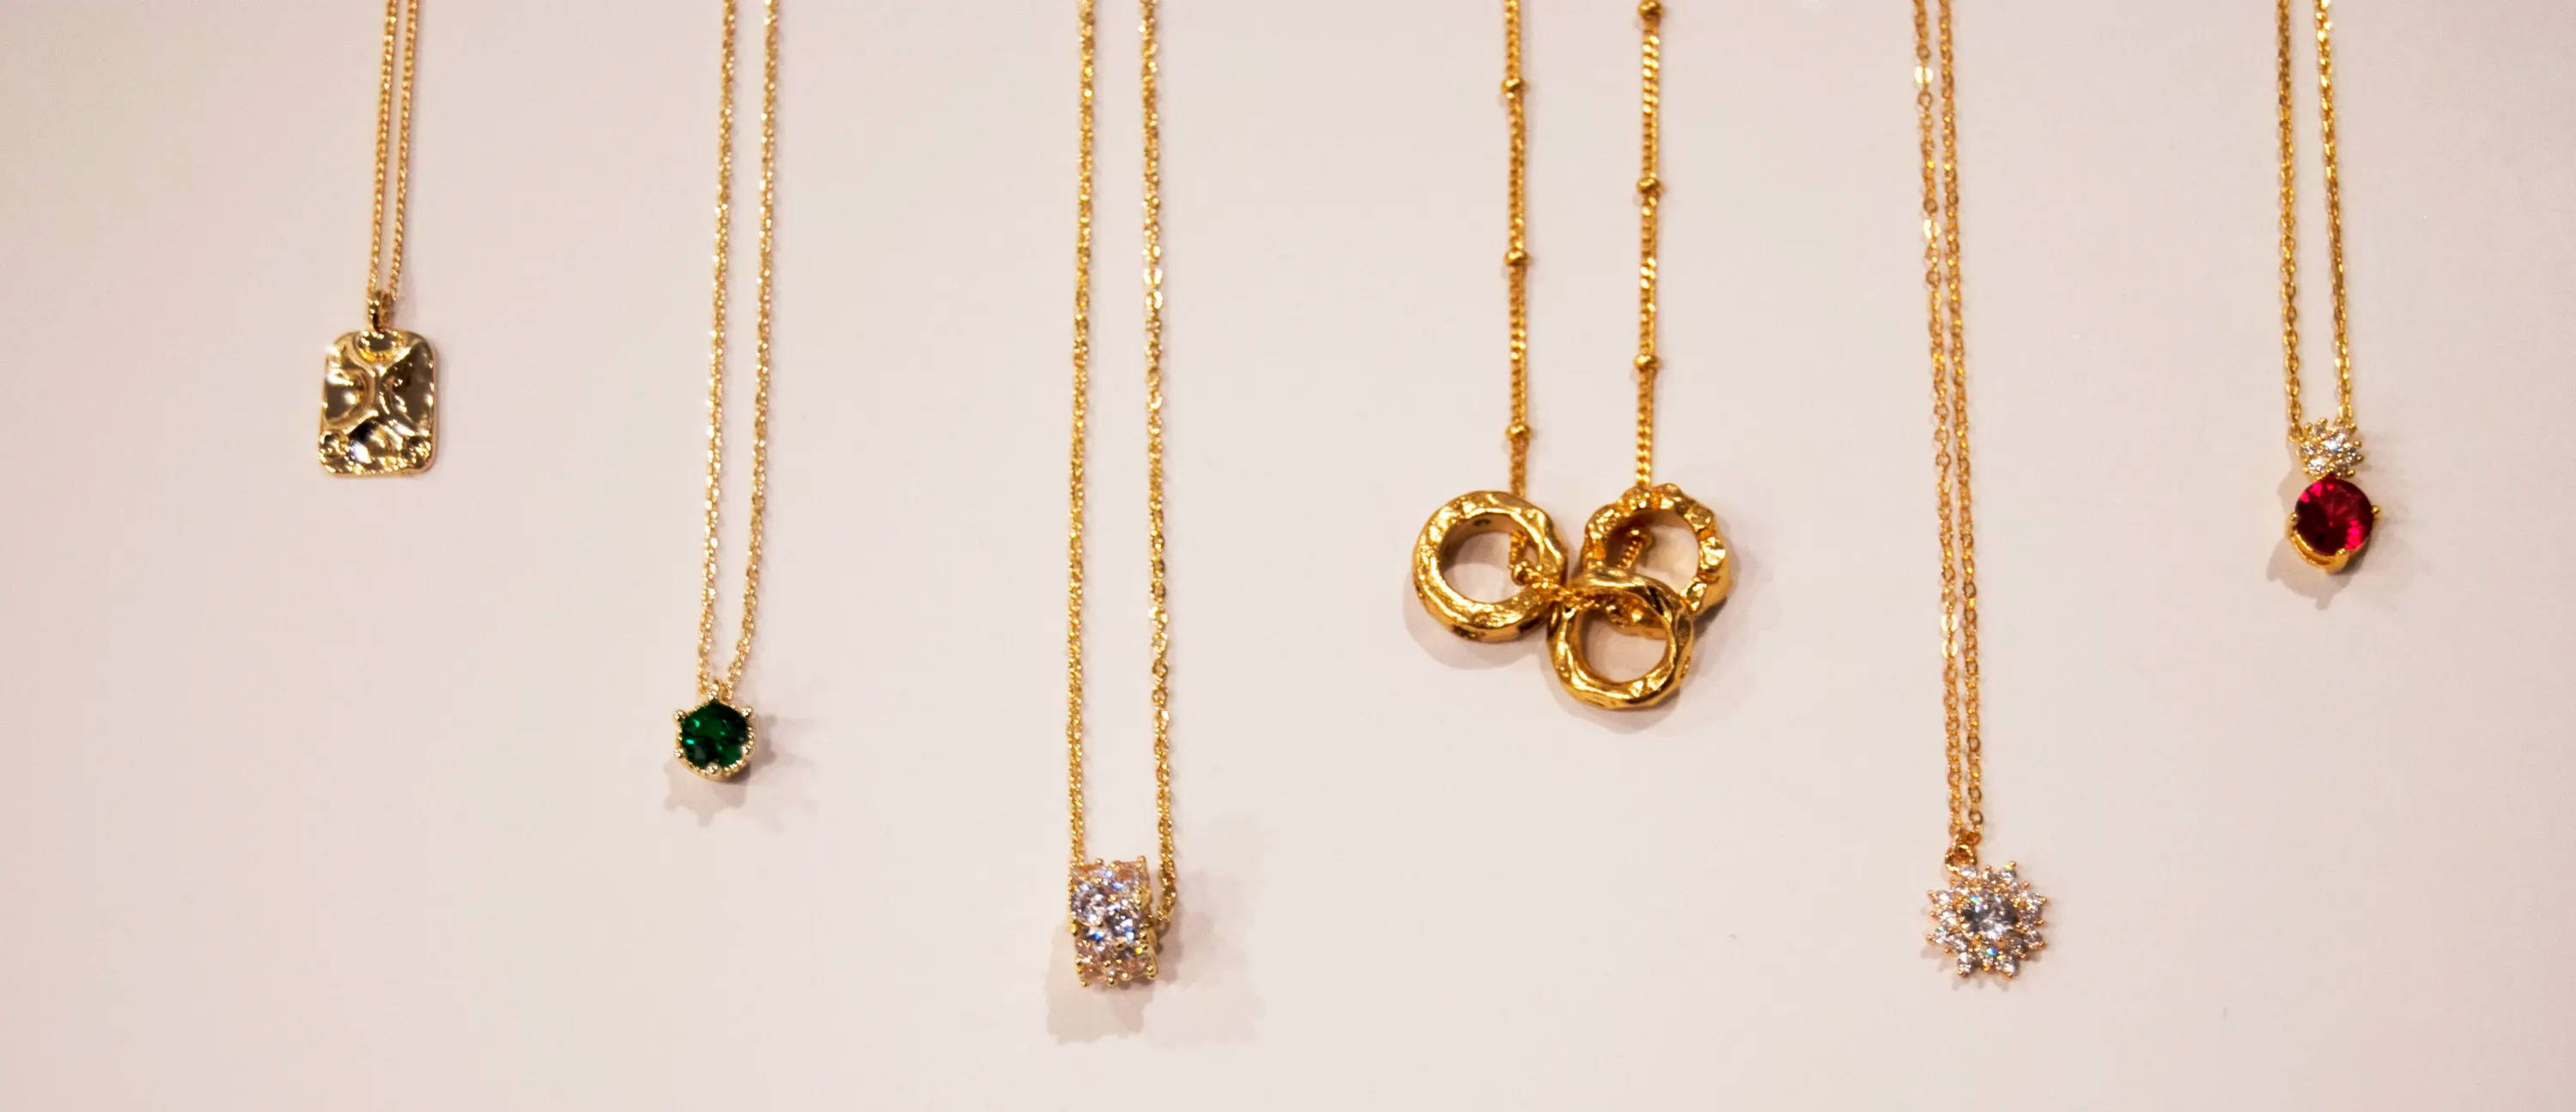 diamond, gemstone, and gold necklaces hanging at moi accessories